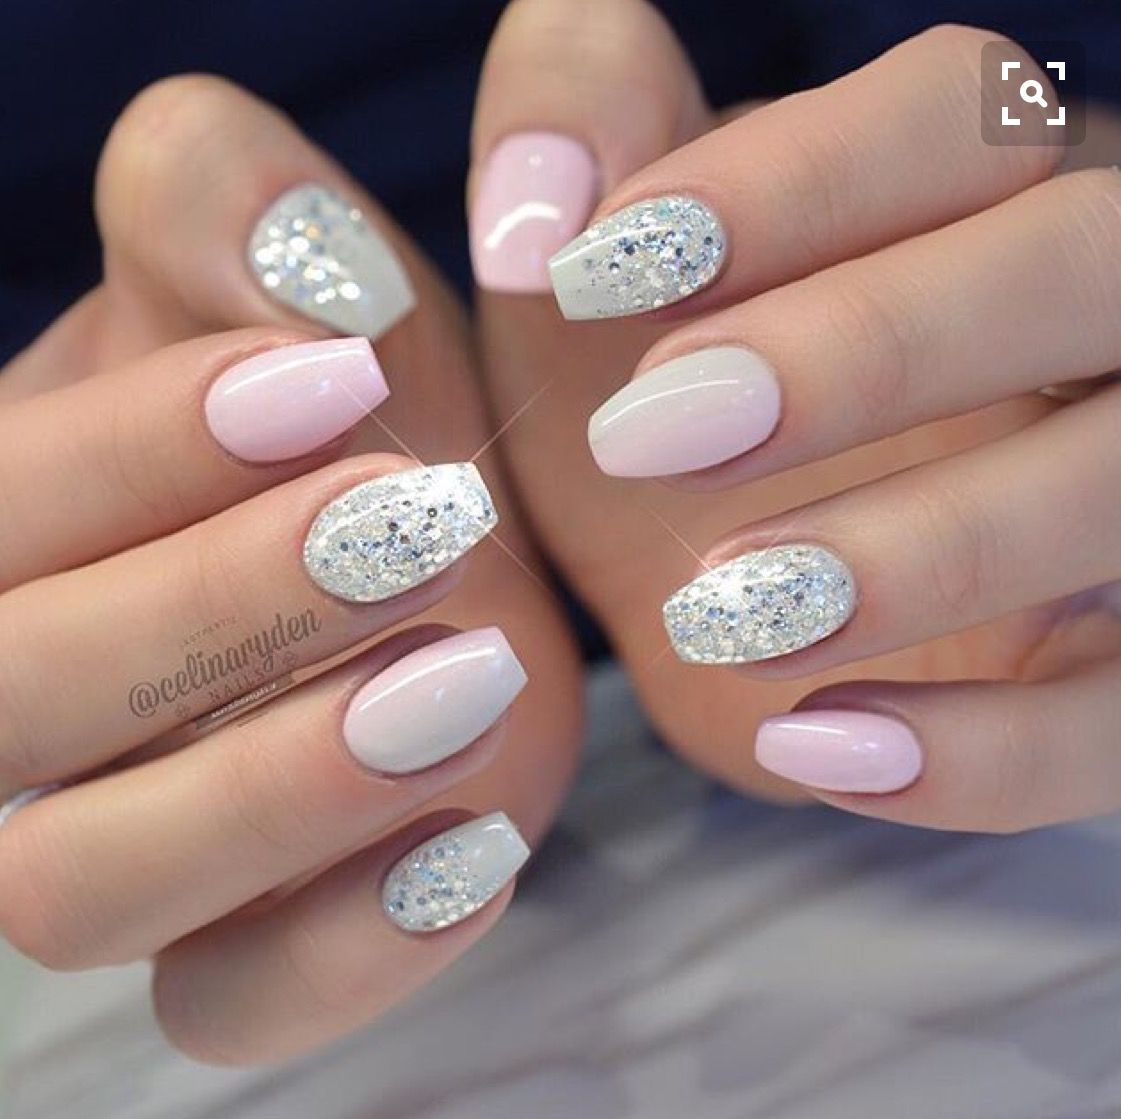 Pinterest Evelyn3catherine Follow For More Short Coffin Nails Designs Solid Color Nails Short Acrylic Nails